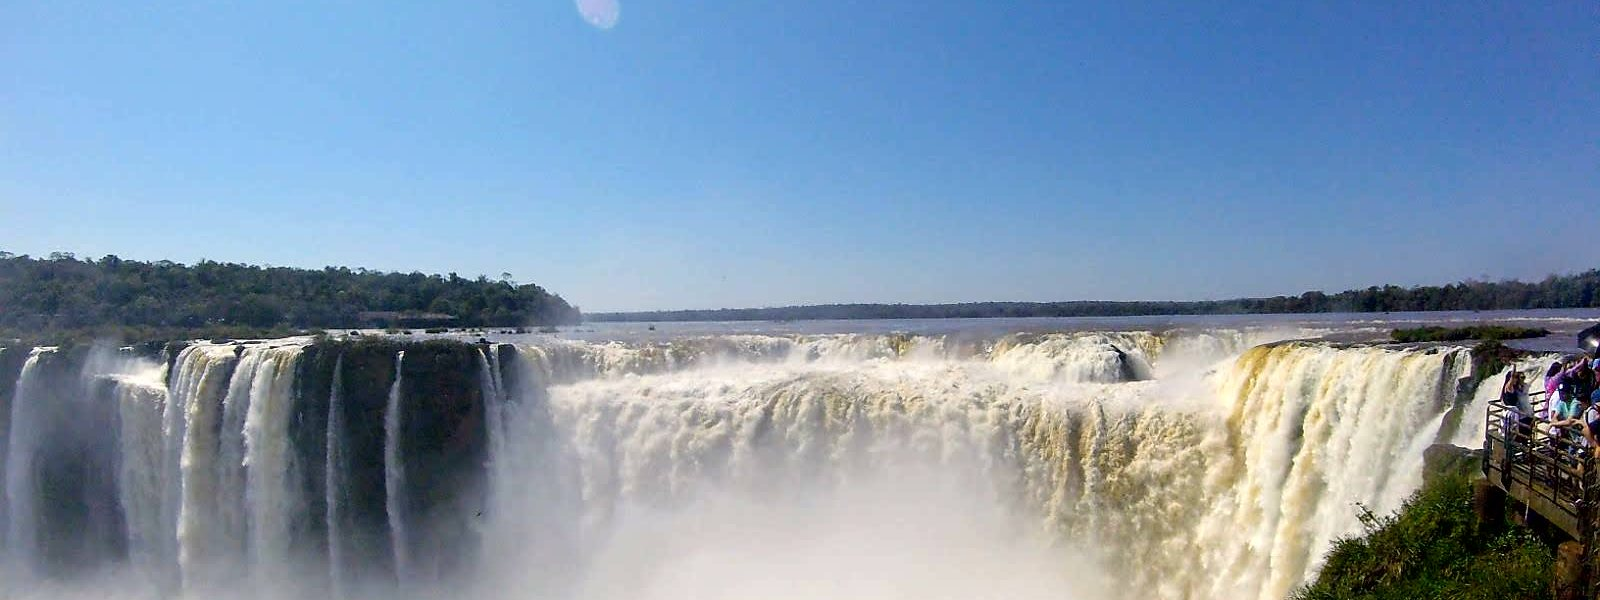 Iguazu Falls: the world's largest waterfalls